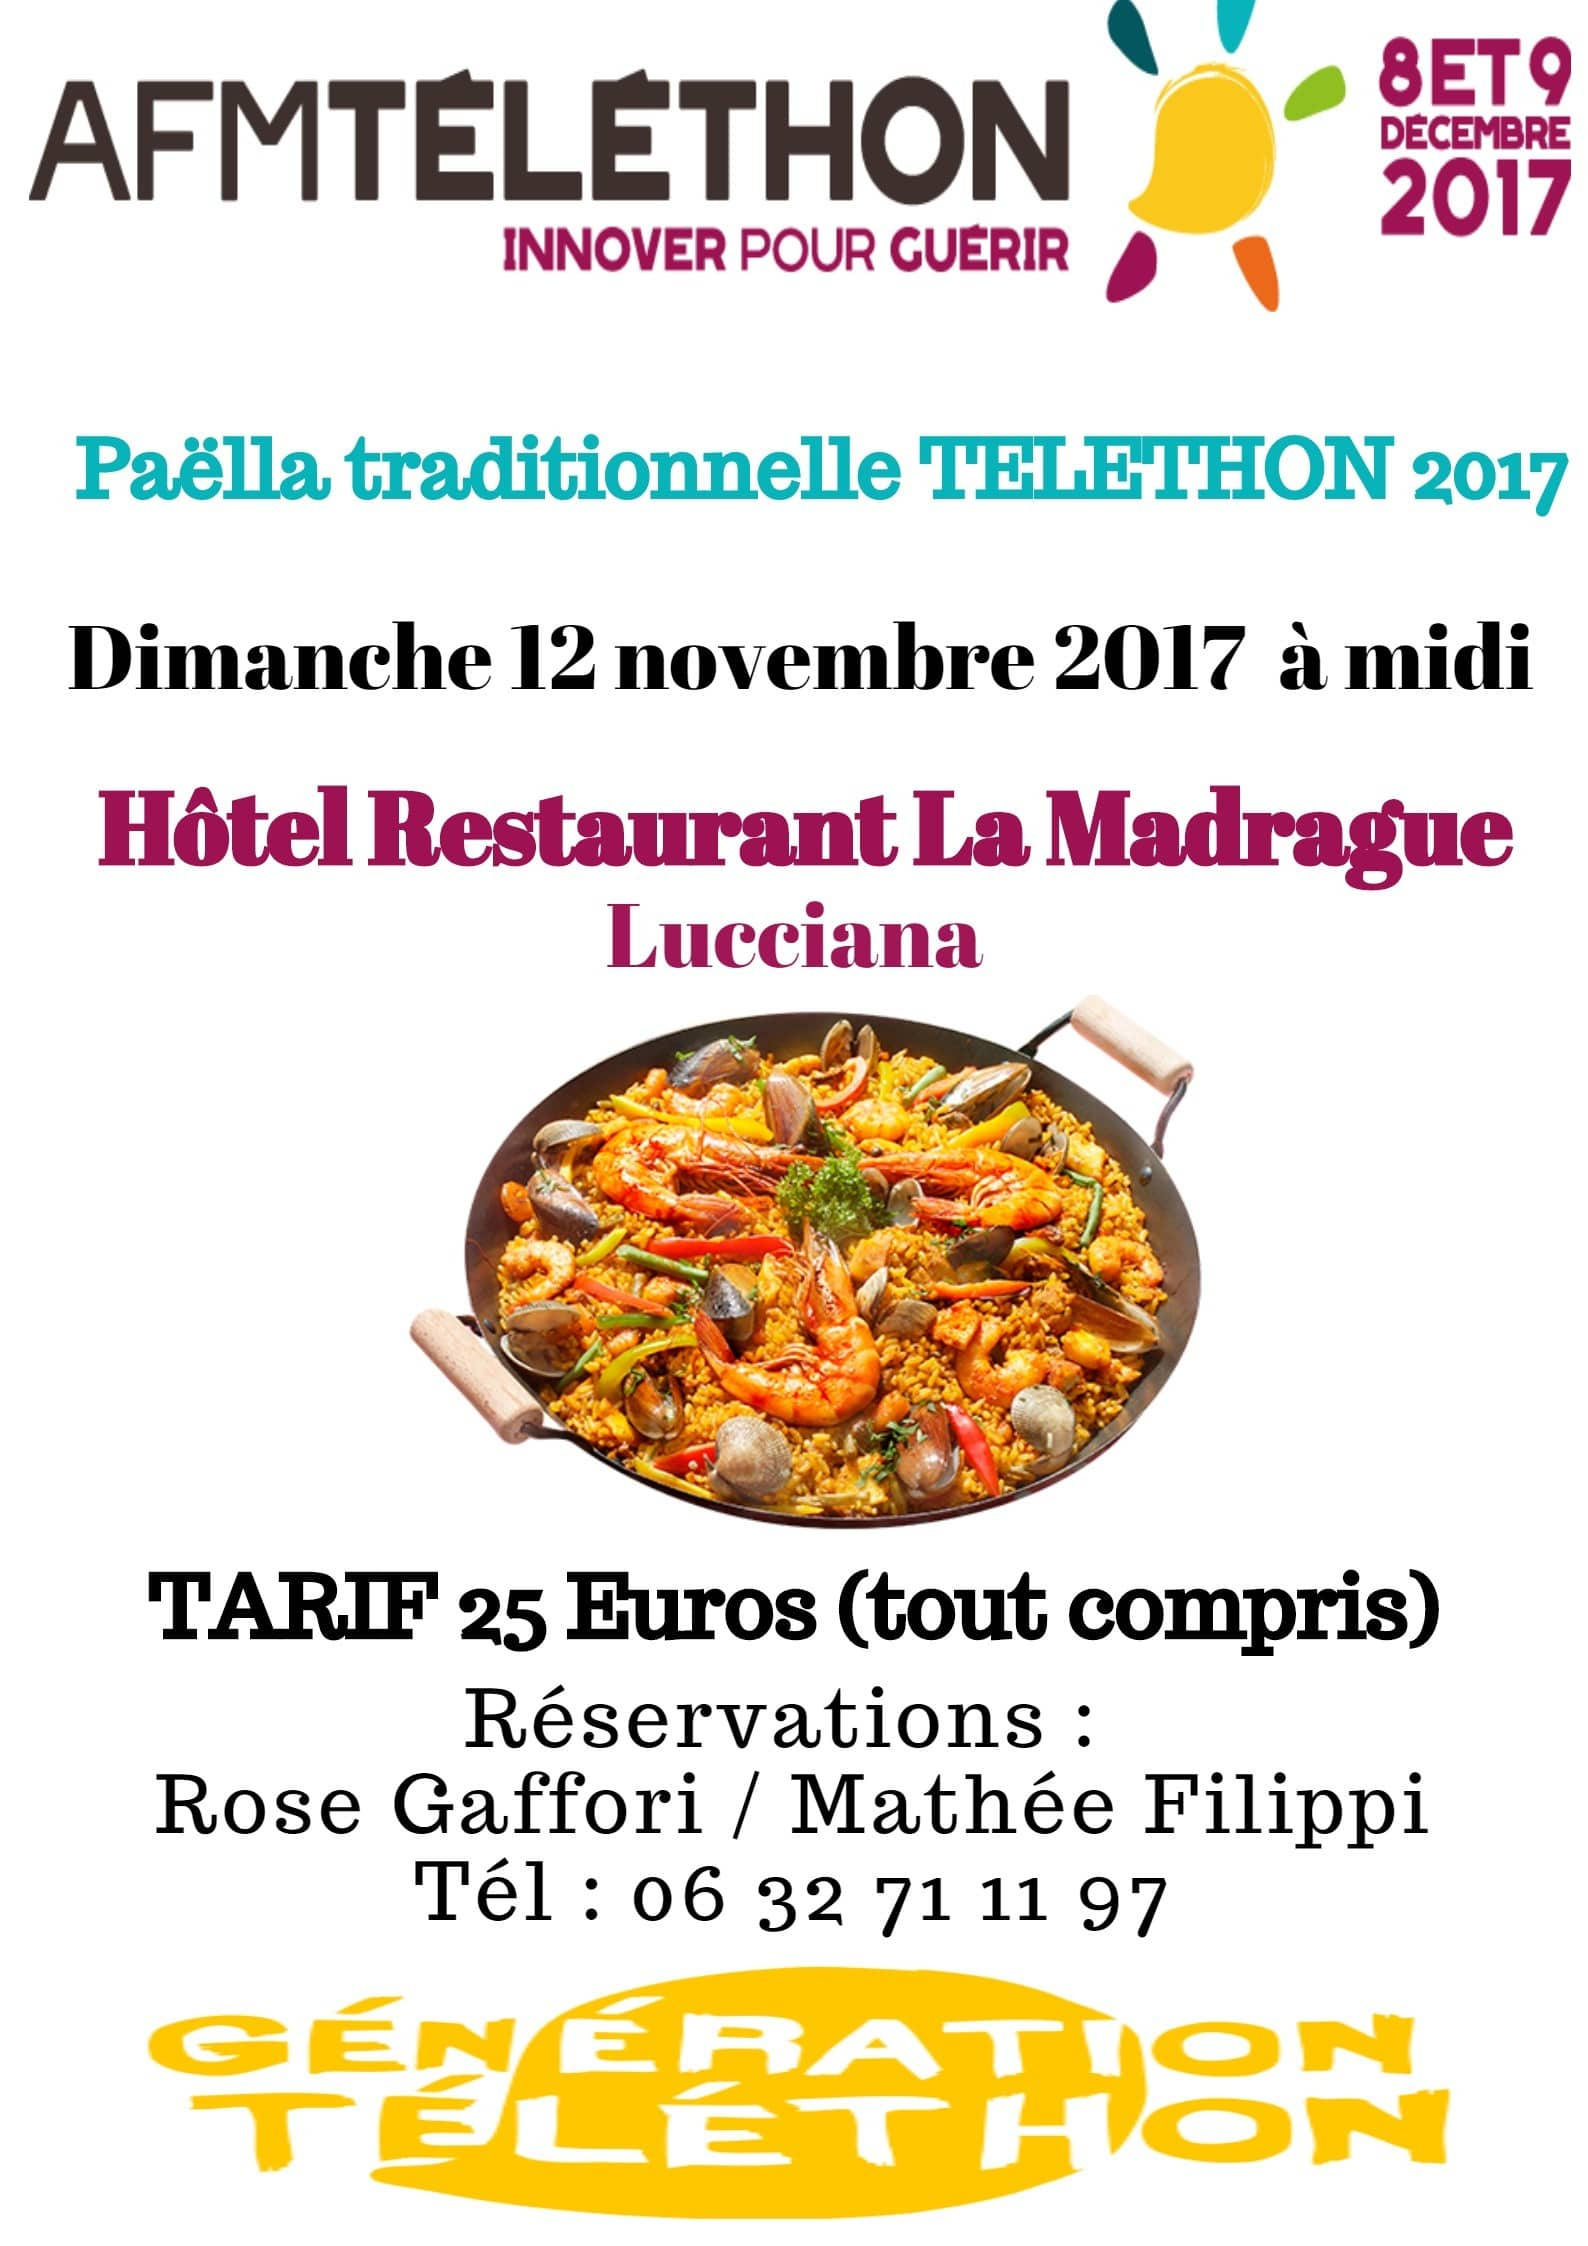 Paëlla traditionnelle TELETHON 2017 à La Madrague